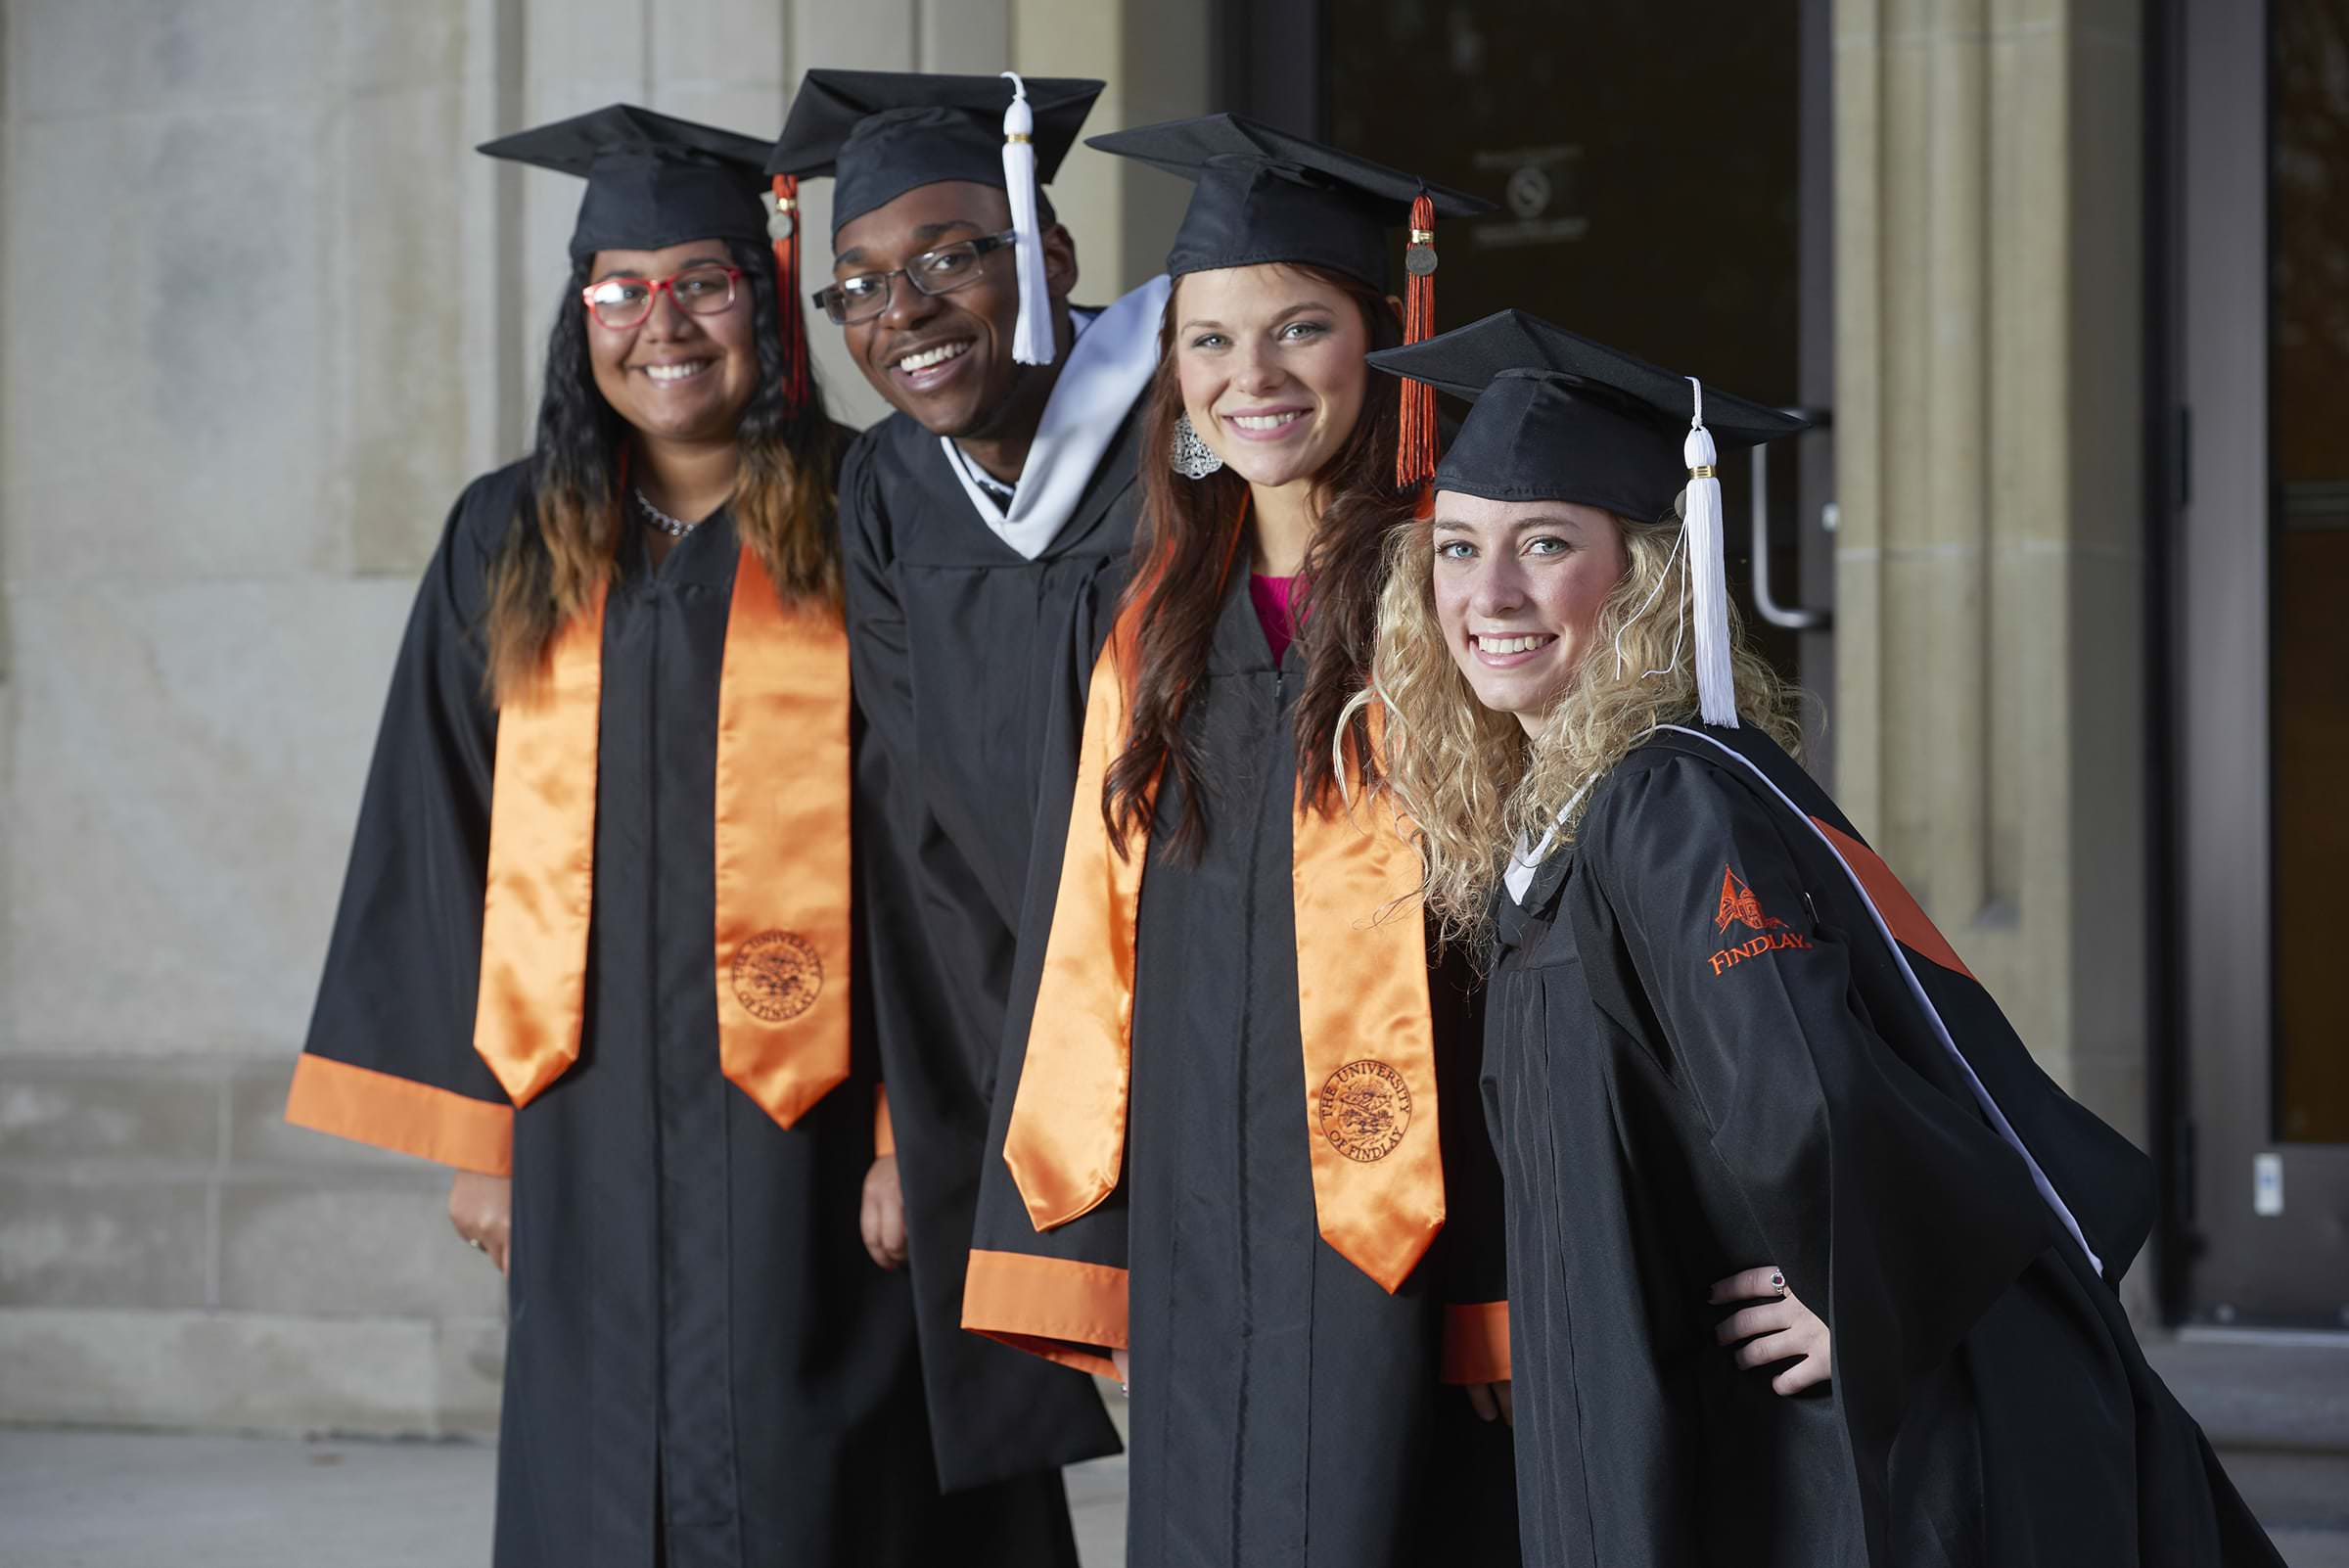 Customized College Cap and Gown - Graduation Resources - Herff Jones